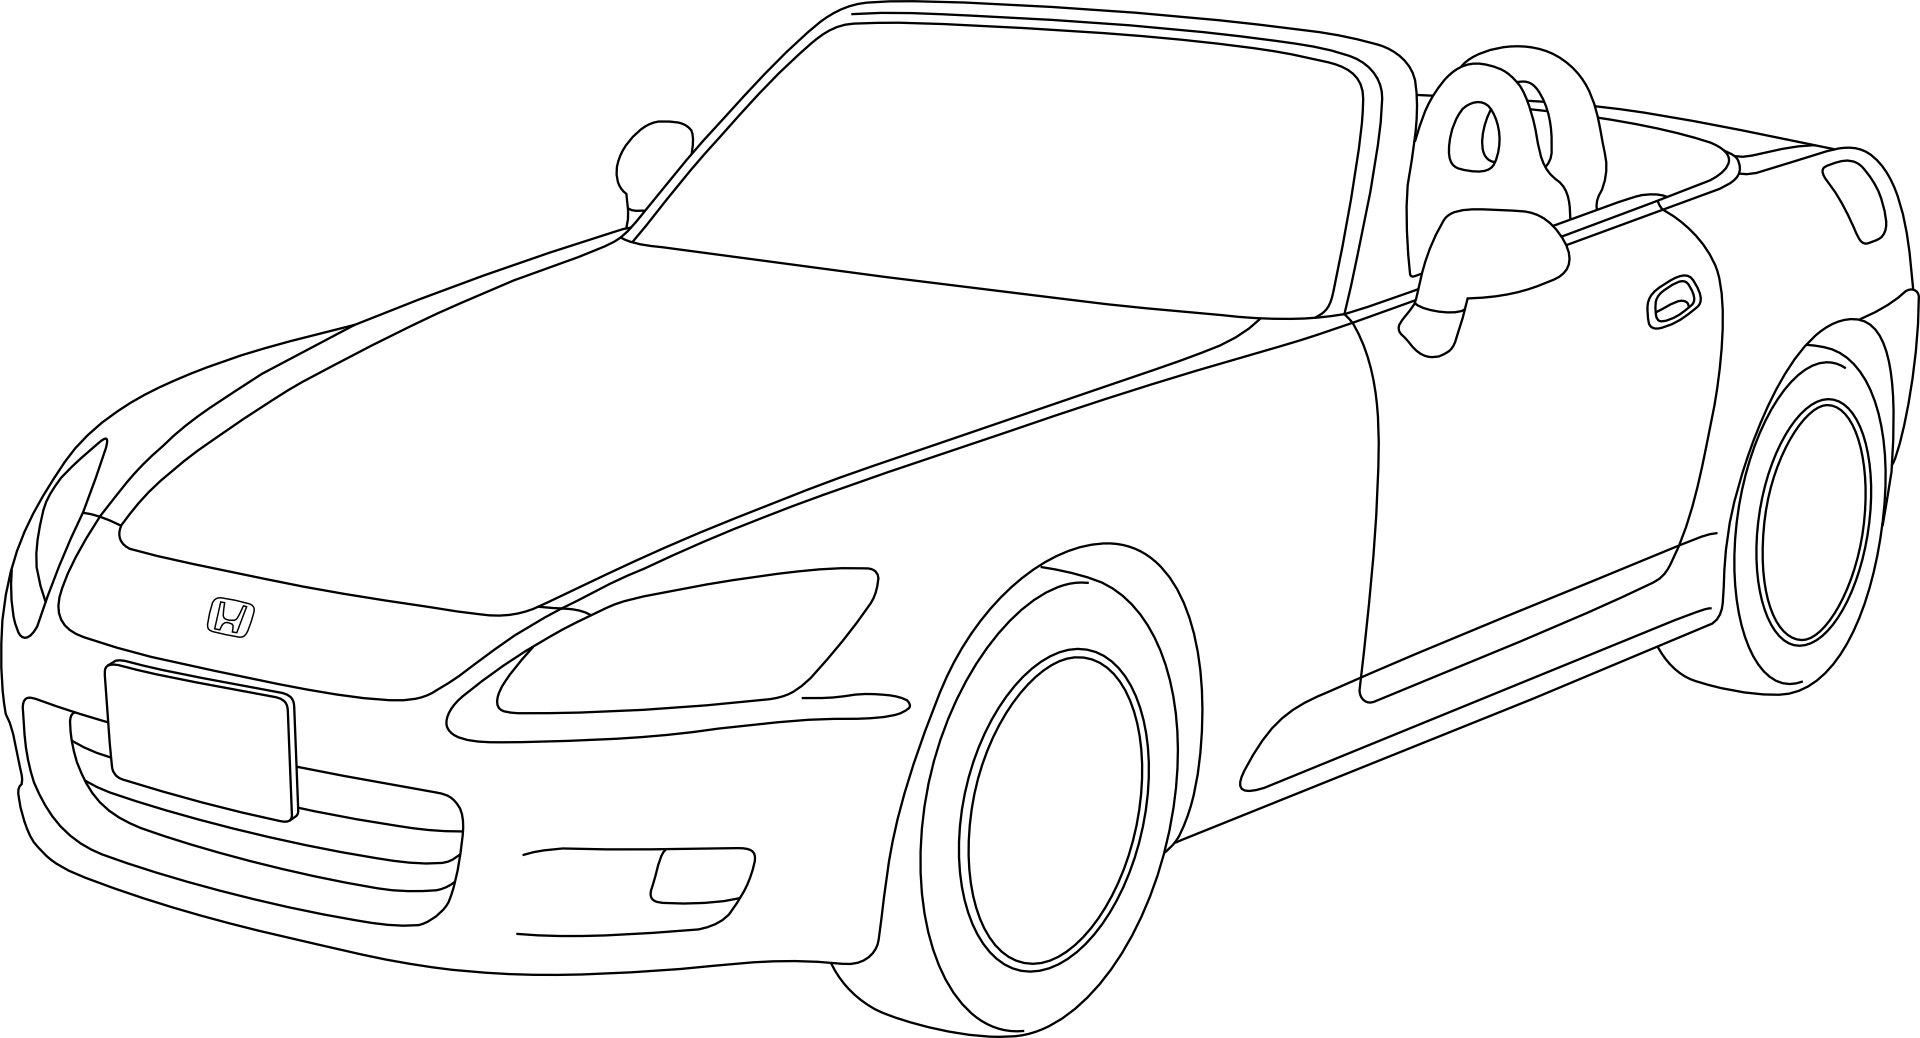 Car Outline Drawing At Getdrawings Com Free For Personal Use Car